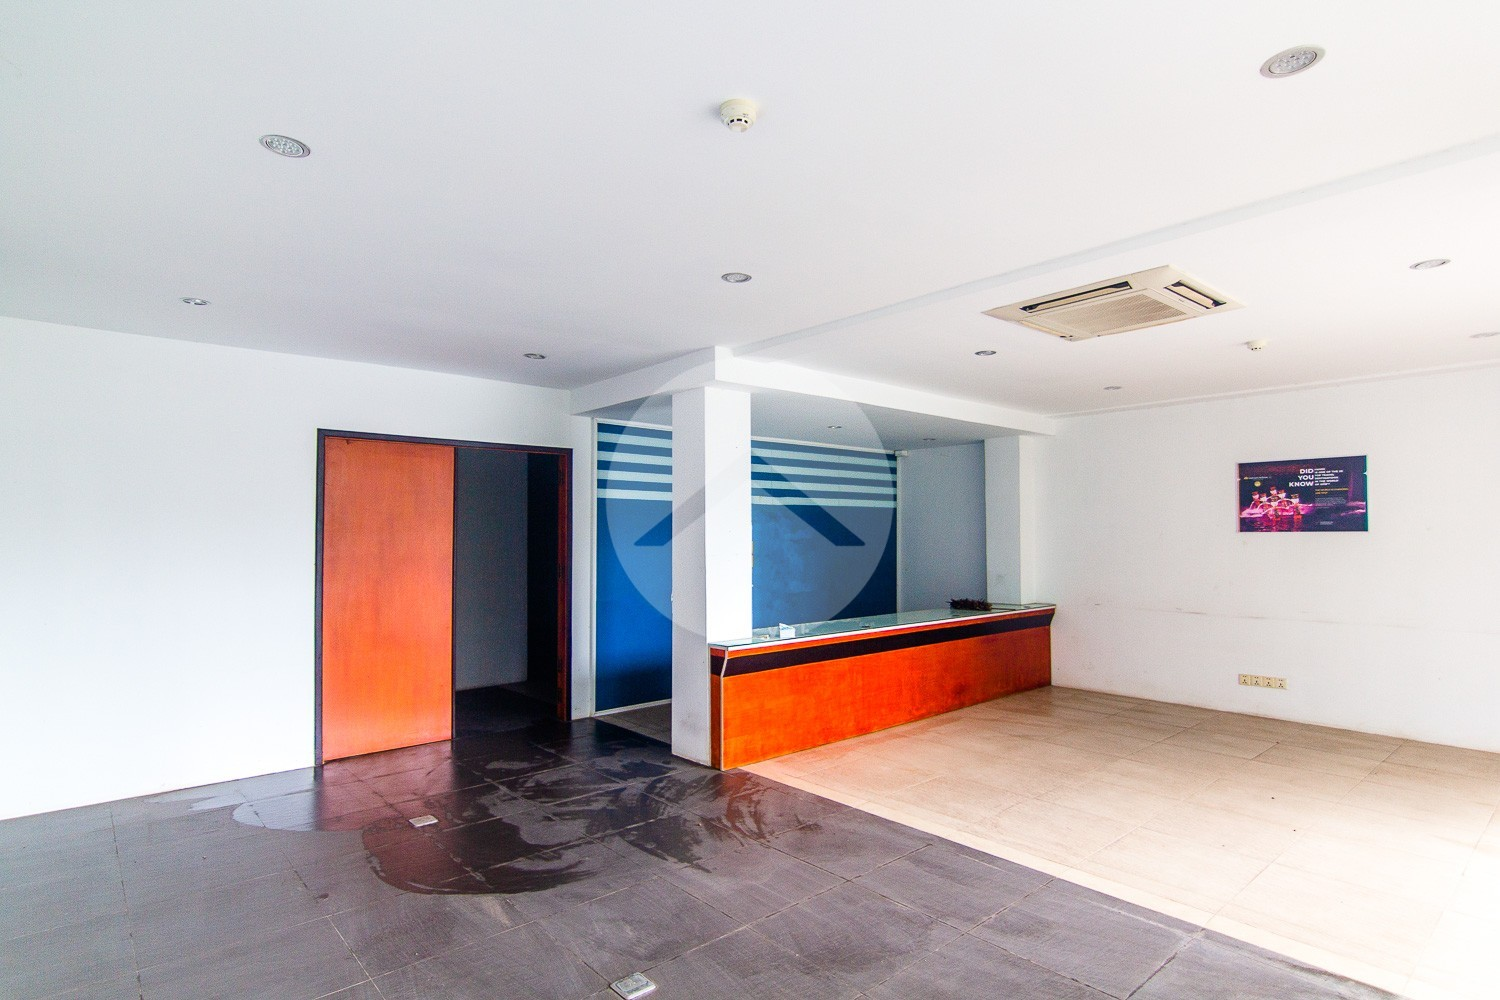 120 Sqm Commercial Space For Rent - Svay Dangkum, Siem Reap